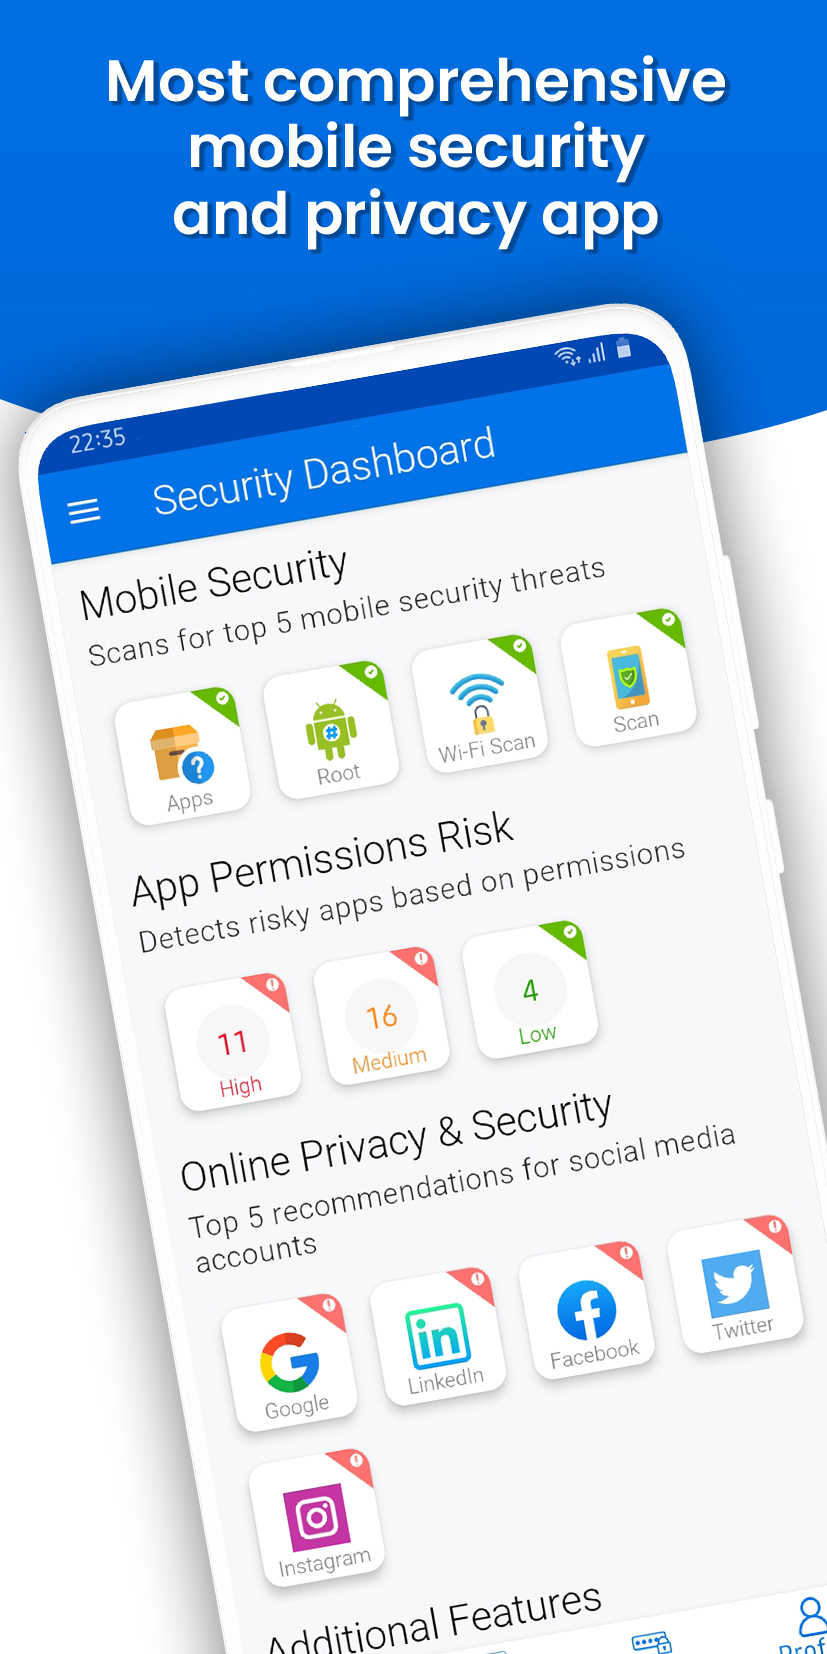 Introducing Infosecyour Mobile Security And Online Privacy App - A Comprehensive Solution For Data Protection